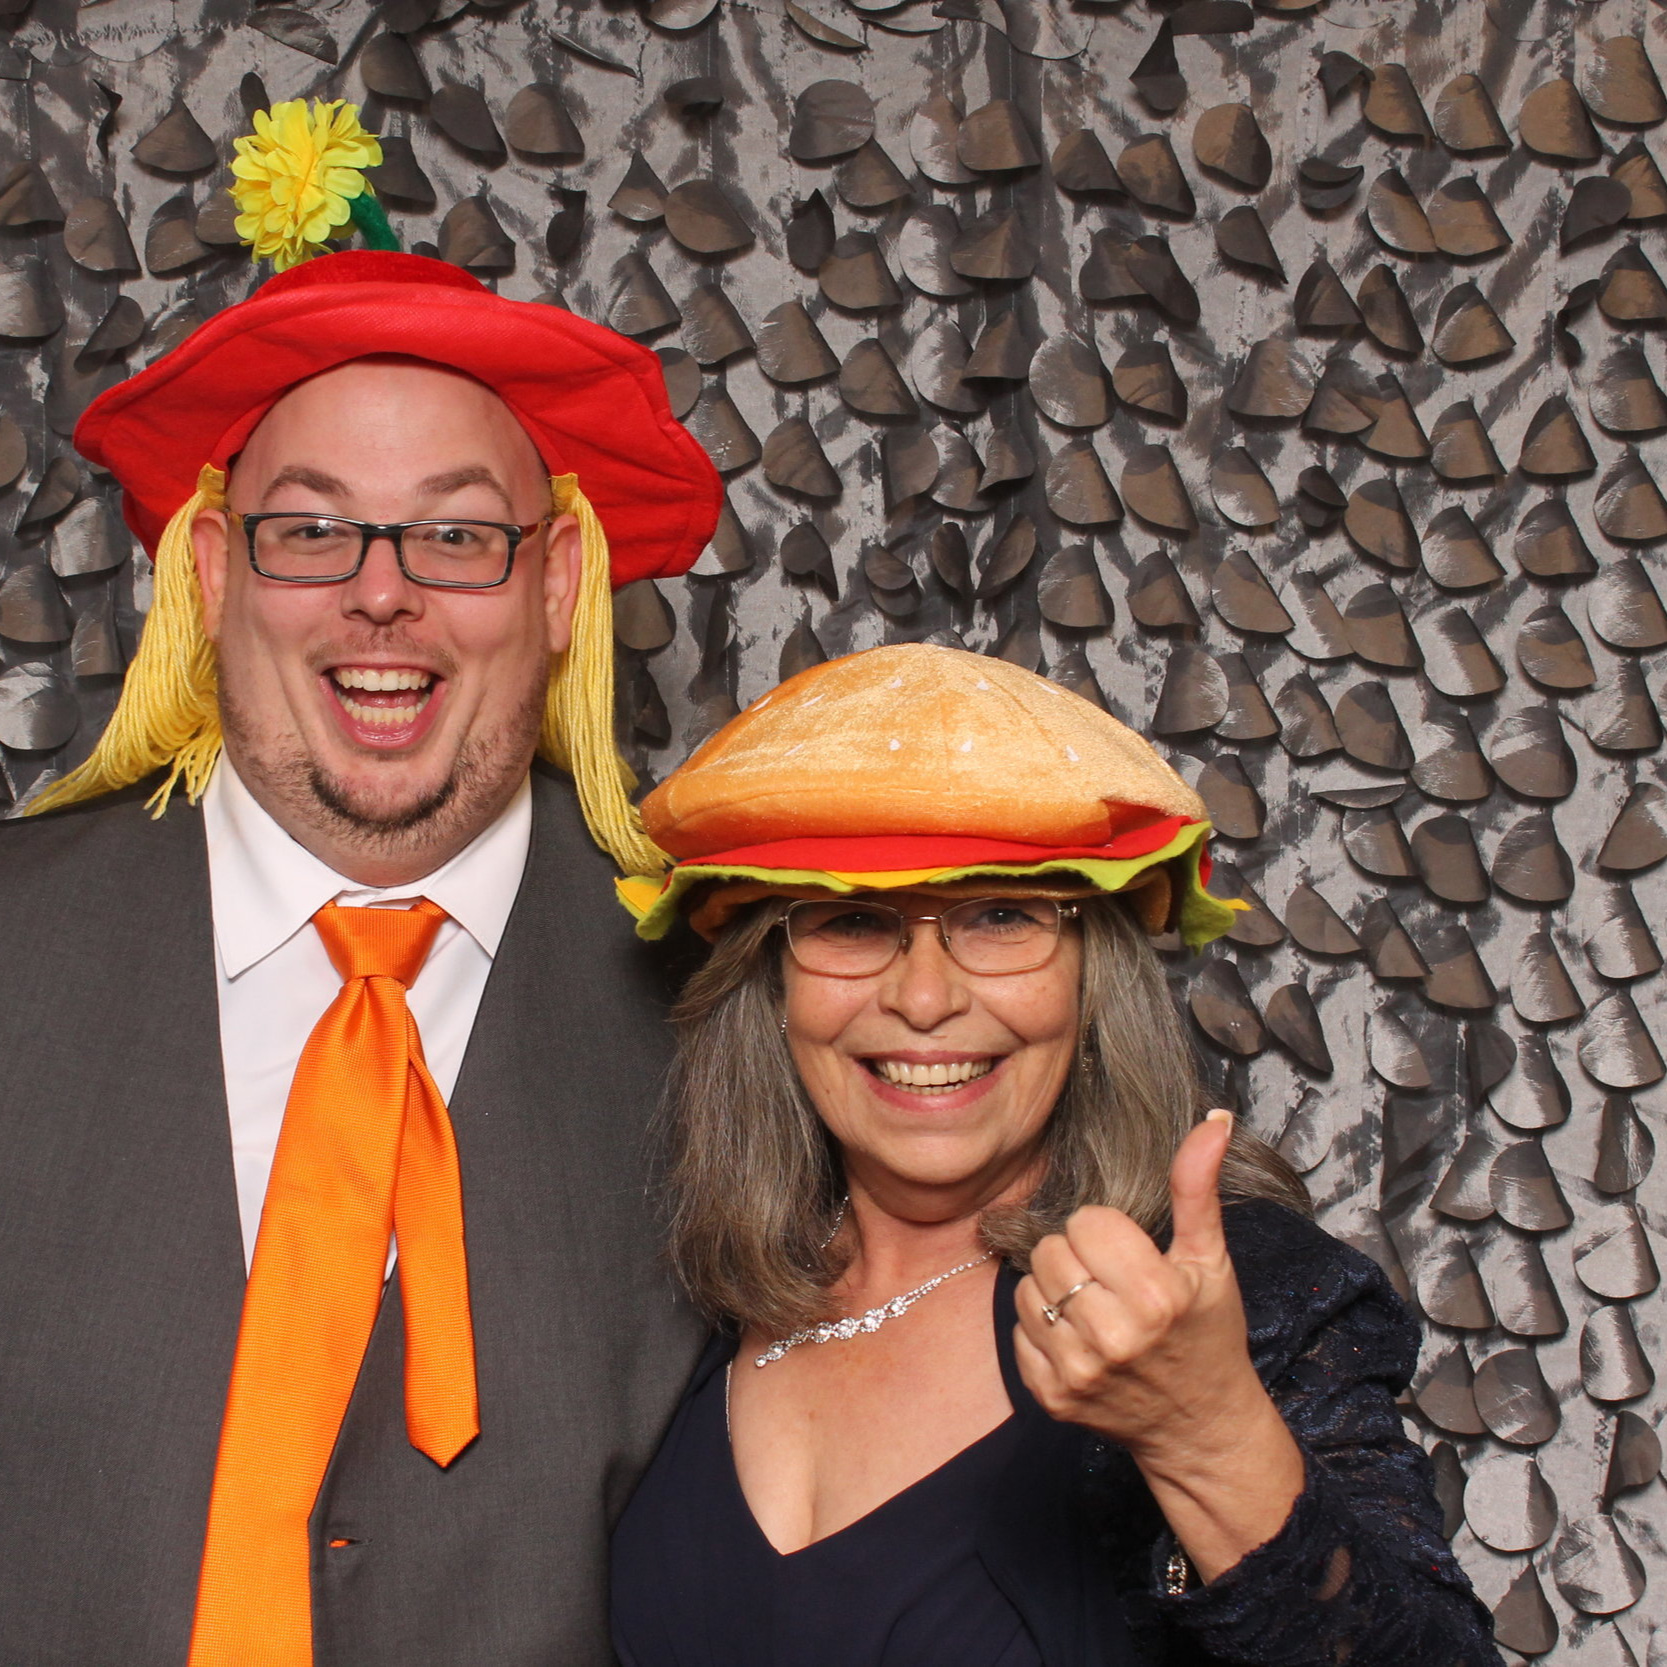 Photo Booth Features - All of our booths have these awesome features:- Social media capabilities!- Still photos!- Videos, gif images, and boomerangs!- Green screen options!- Unlimited prints!- Fun props!